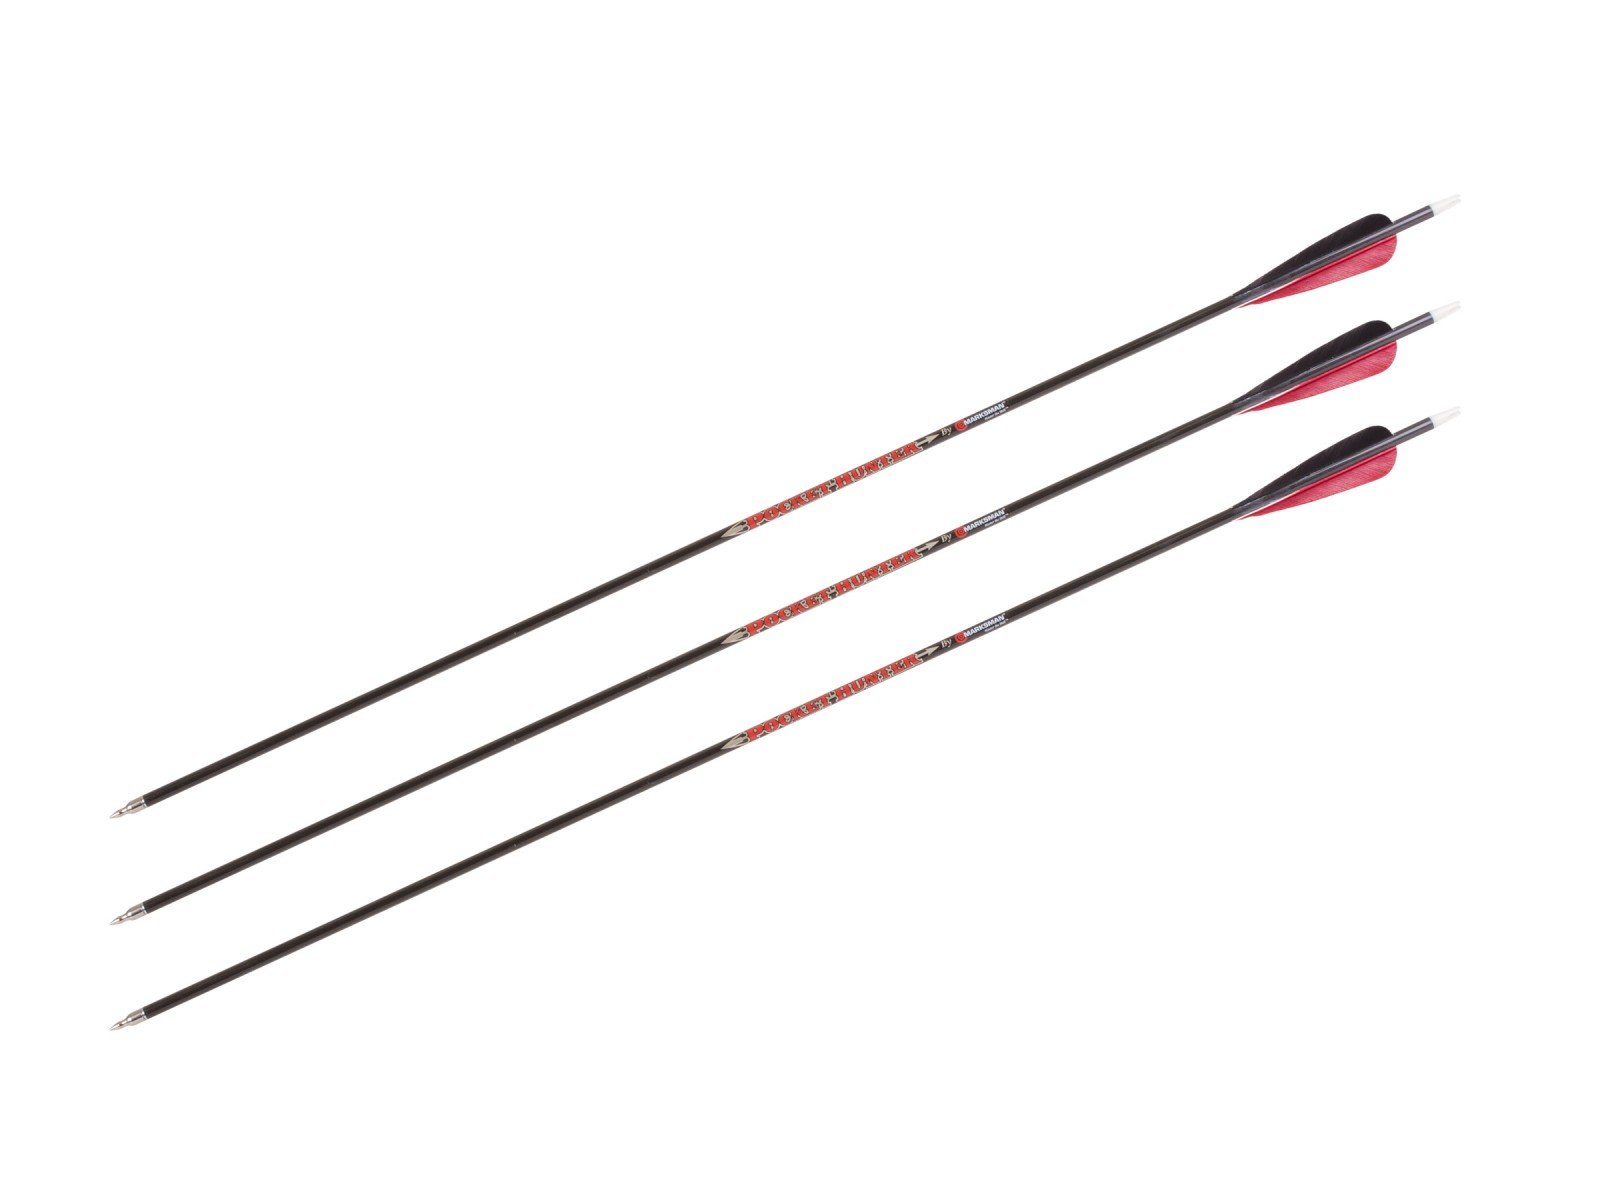 "Marksman Pocket Hunter 31"" Carbon Arrows, 3 pack"